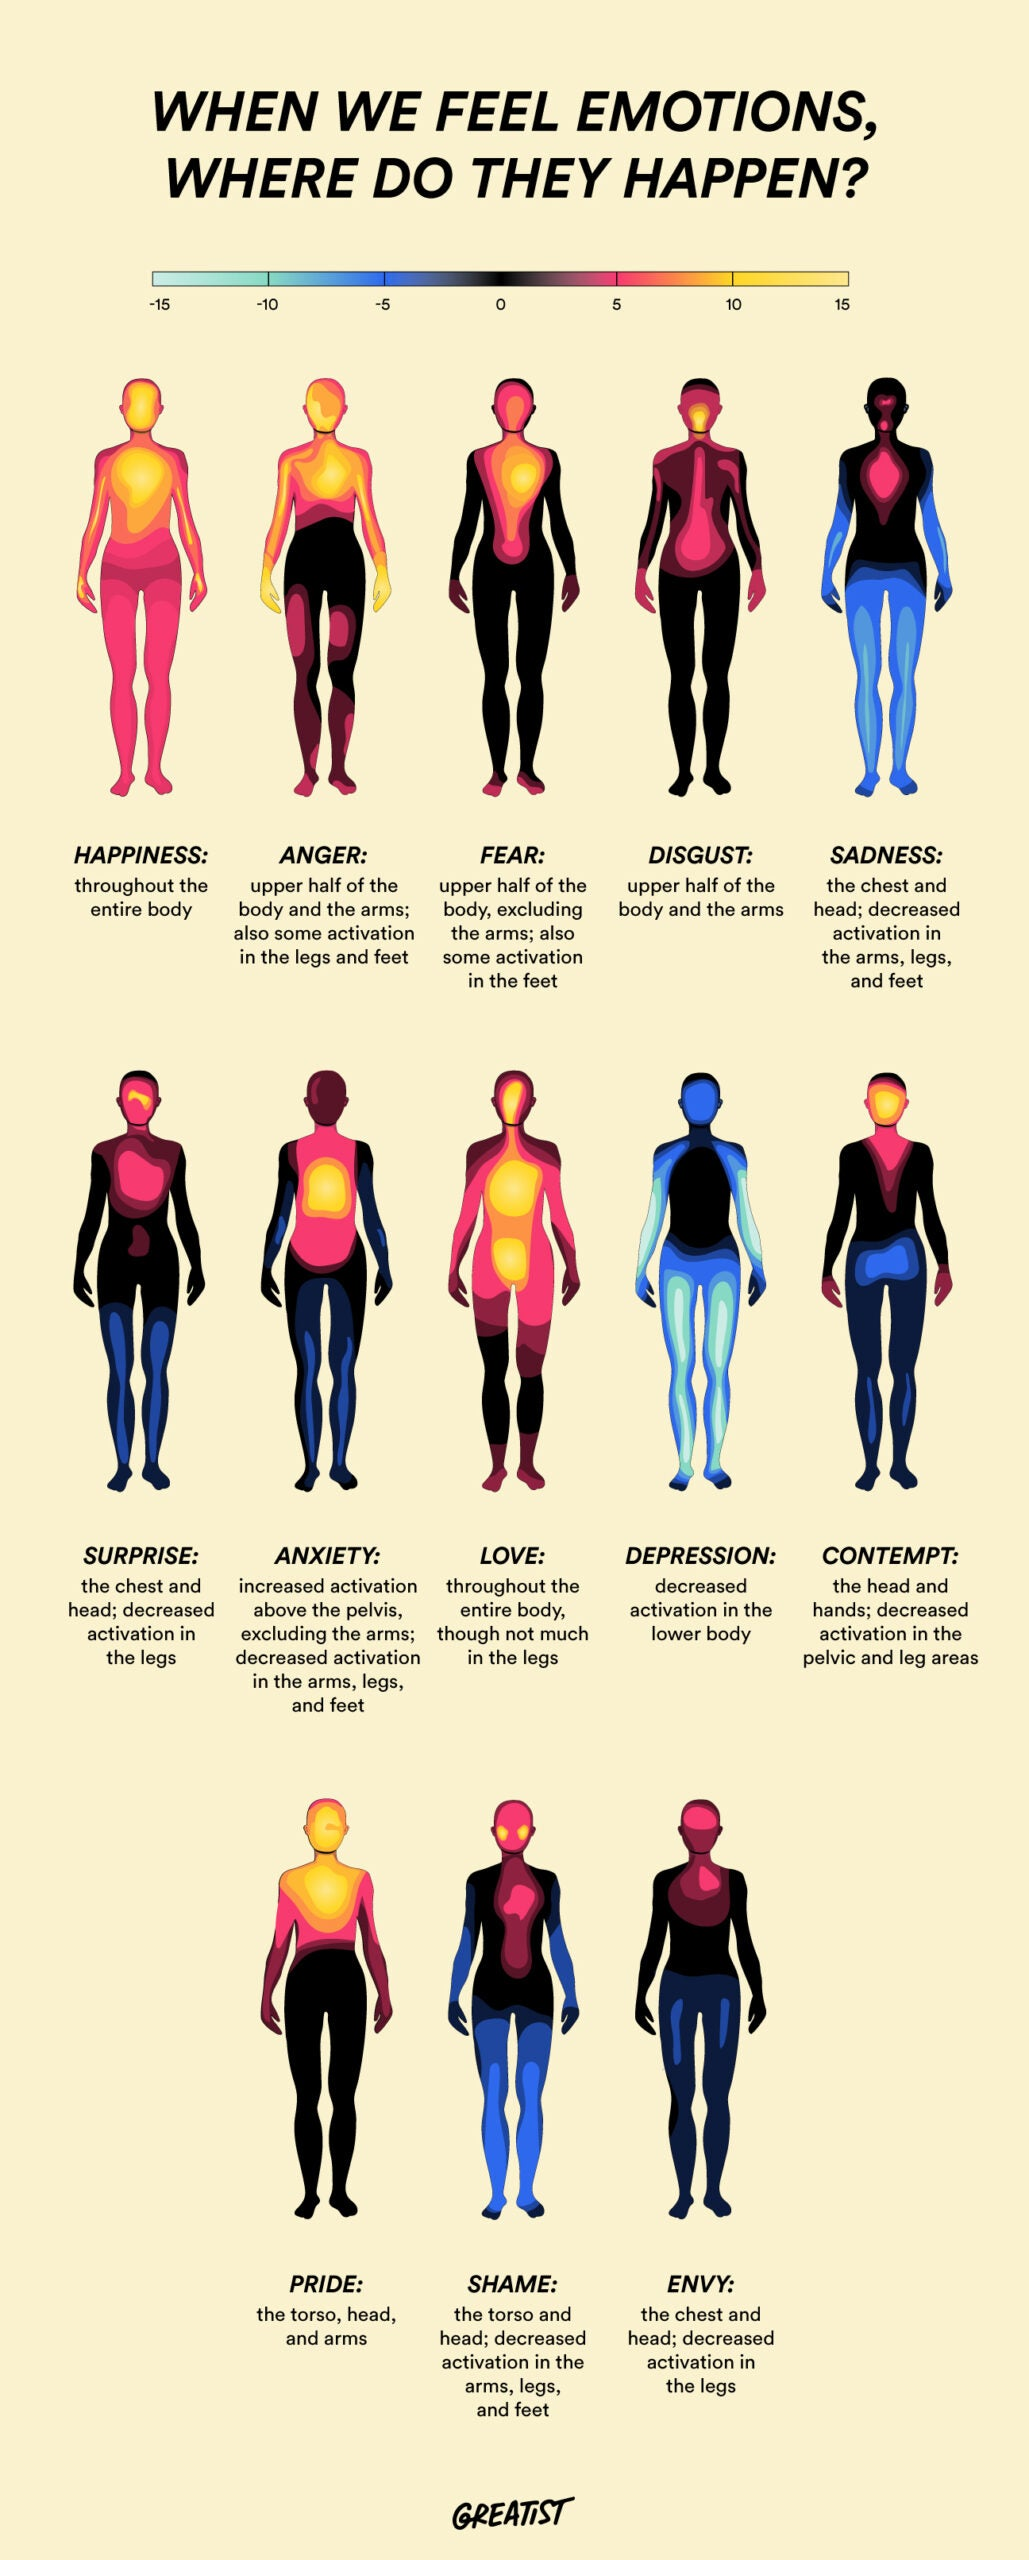 the greatist body temperature chart and emotions